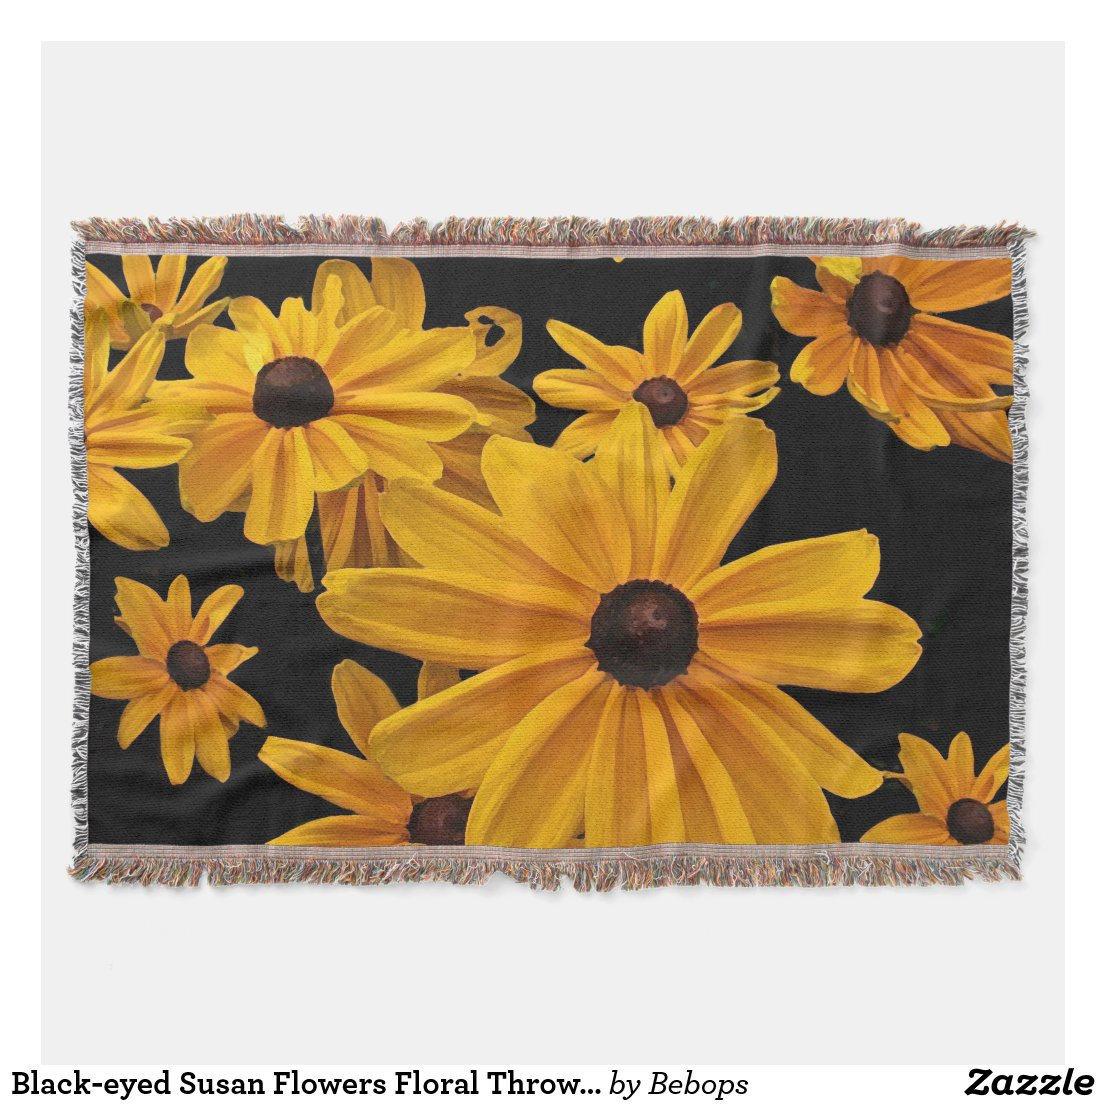 Black-eyed Susan Flowers Floral Throw Blanket